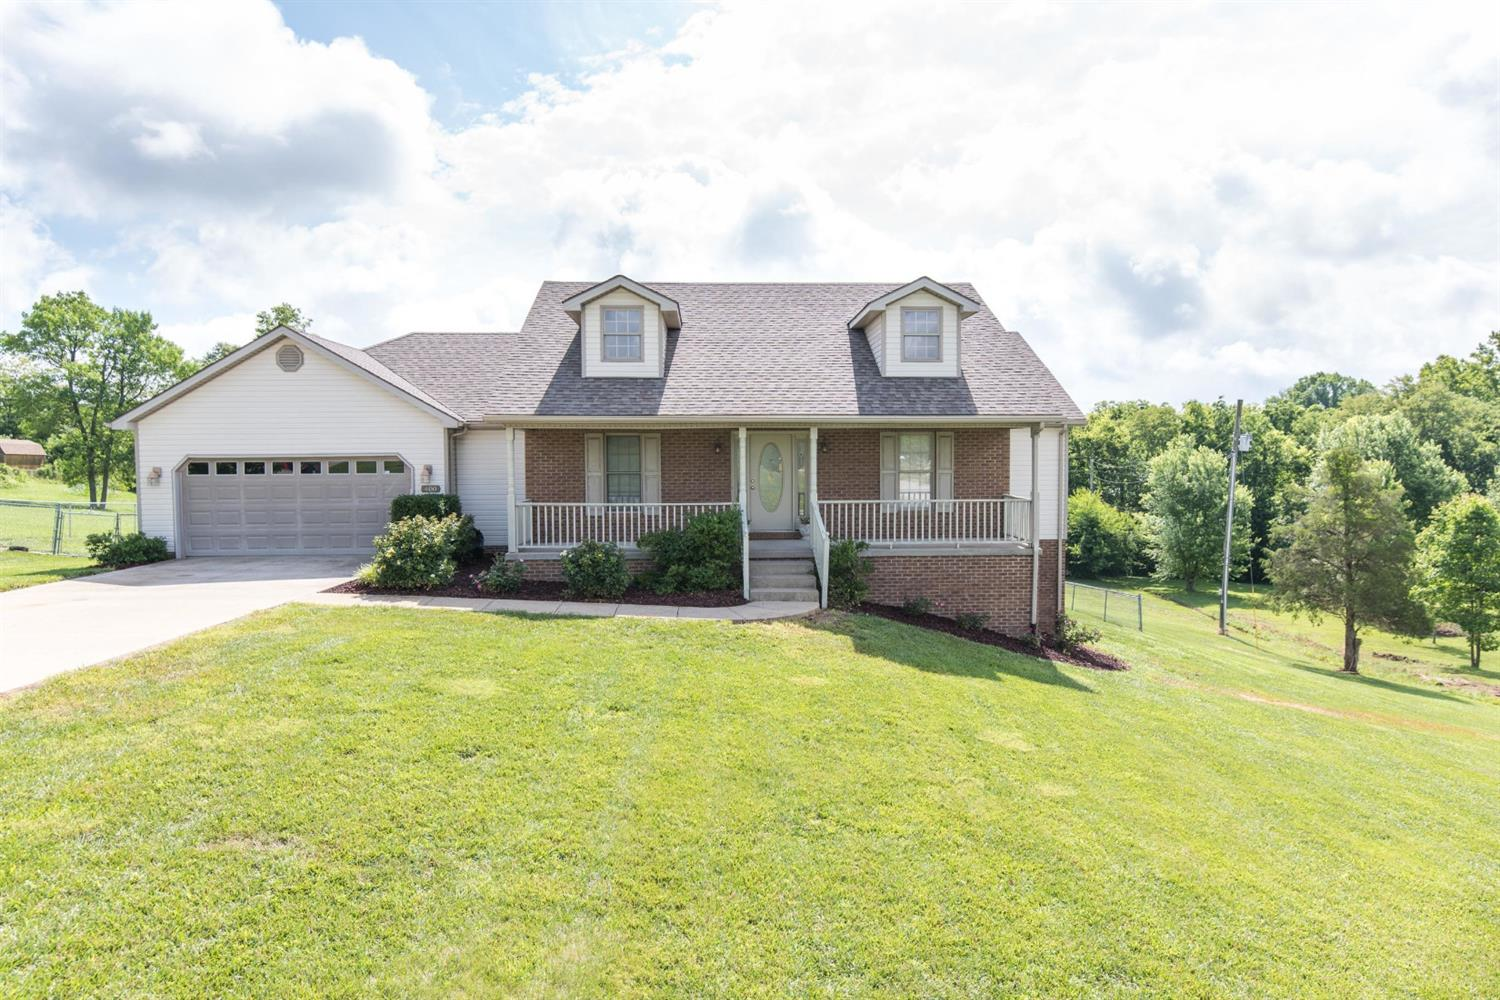 Beautiful%20ranch%20on%20a%20full%20walk%20out%20basement!%20This%20home%20has%20it%20all,%204%20bedrooms,%203%20full%20baths%20on%20an%20AMAZING%201%20acre%20lot.%20%20Spacious%20layout%20that%20features%20a%20formal%20dining%20room%20and%20family%20room%20with%20specialty%20ceilings,%20gas%20log%20fireplace%20and%20beautiful%20hardwood%20flooring.%20The%20kitchen%20offers%20lots%20of%20cabinet%20and%20counter%20space%20plus%20a%20breakfast%20area%20overlooking%20the%20beautiful%20backyard.%20%20Outside%20you%20will%20find%20a%20large%20fenced%20area,%20a%20big%20storage%20shed%20and%20an%20outstanding%20fire%20pit%20with%20large%20rocks%20that%20is%20the%20perfect%20spot%20for%20fun%20filled%20evenings%20in%20the%20backyard.%20Superb%20location!%20This%20home%20is%20only%20minutes%20from%20Lexington,%20Richmond%20and%20Winchester.%20Easy%20to%20view,%20schedule%20your%20private%20showing%20today!